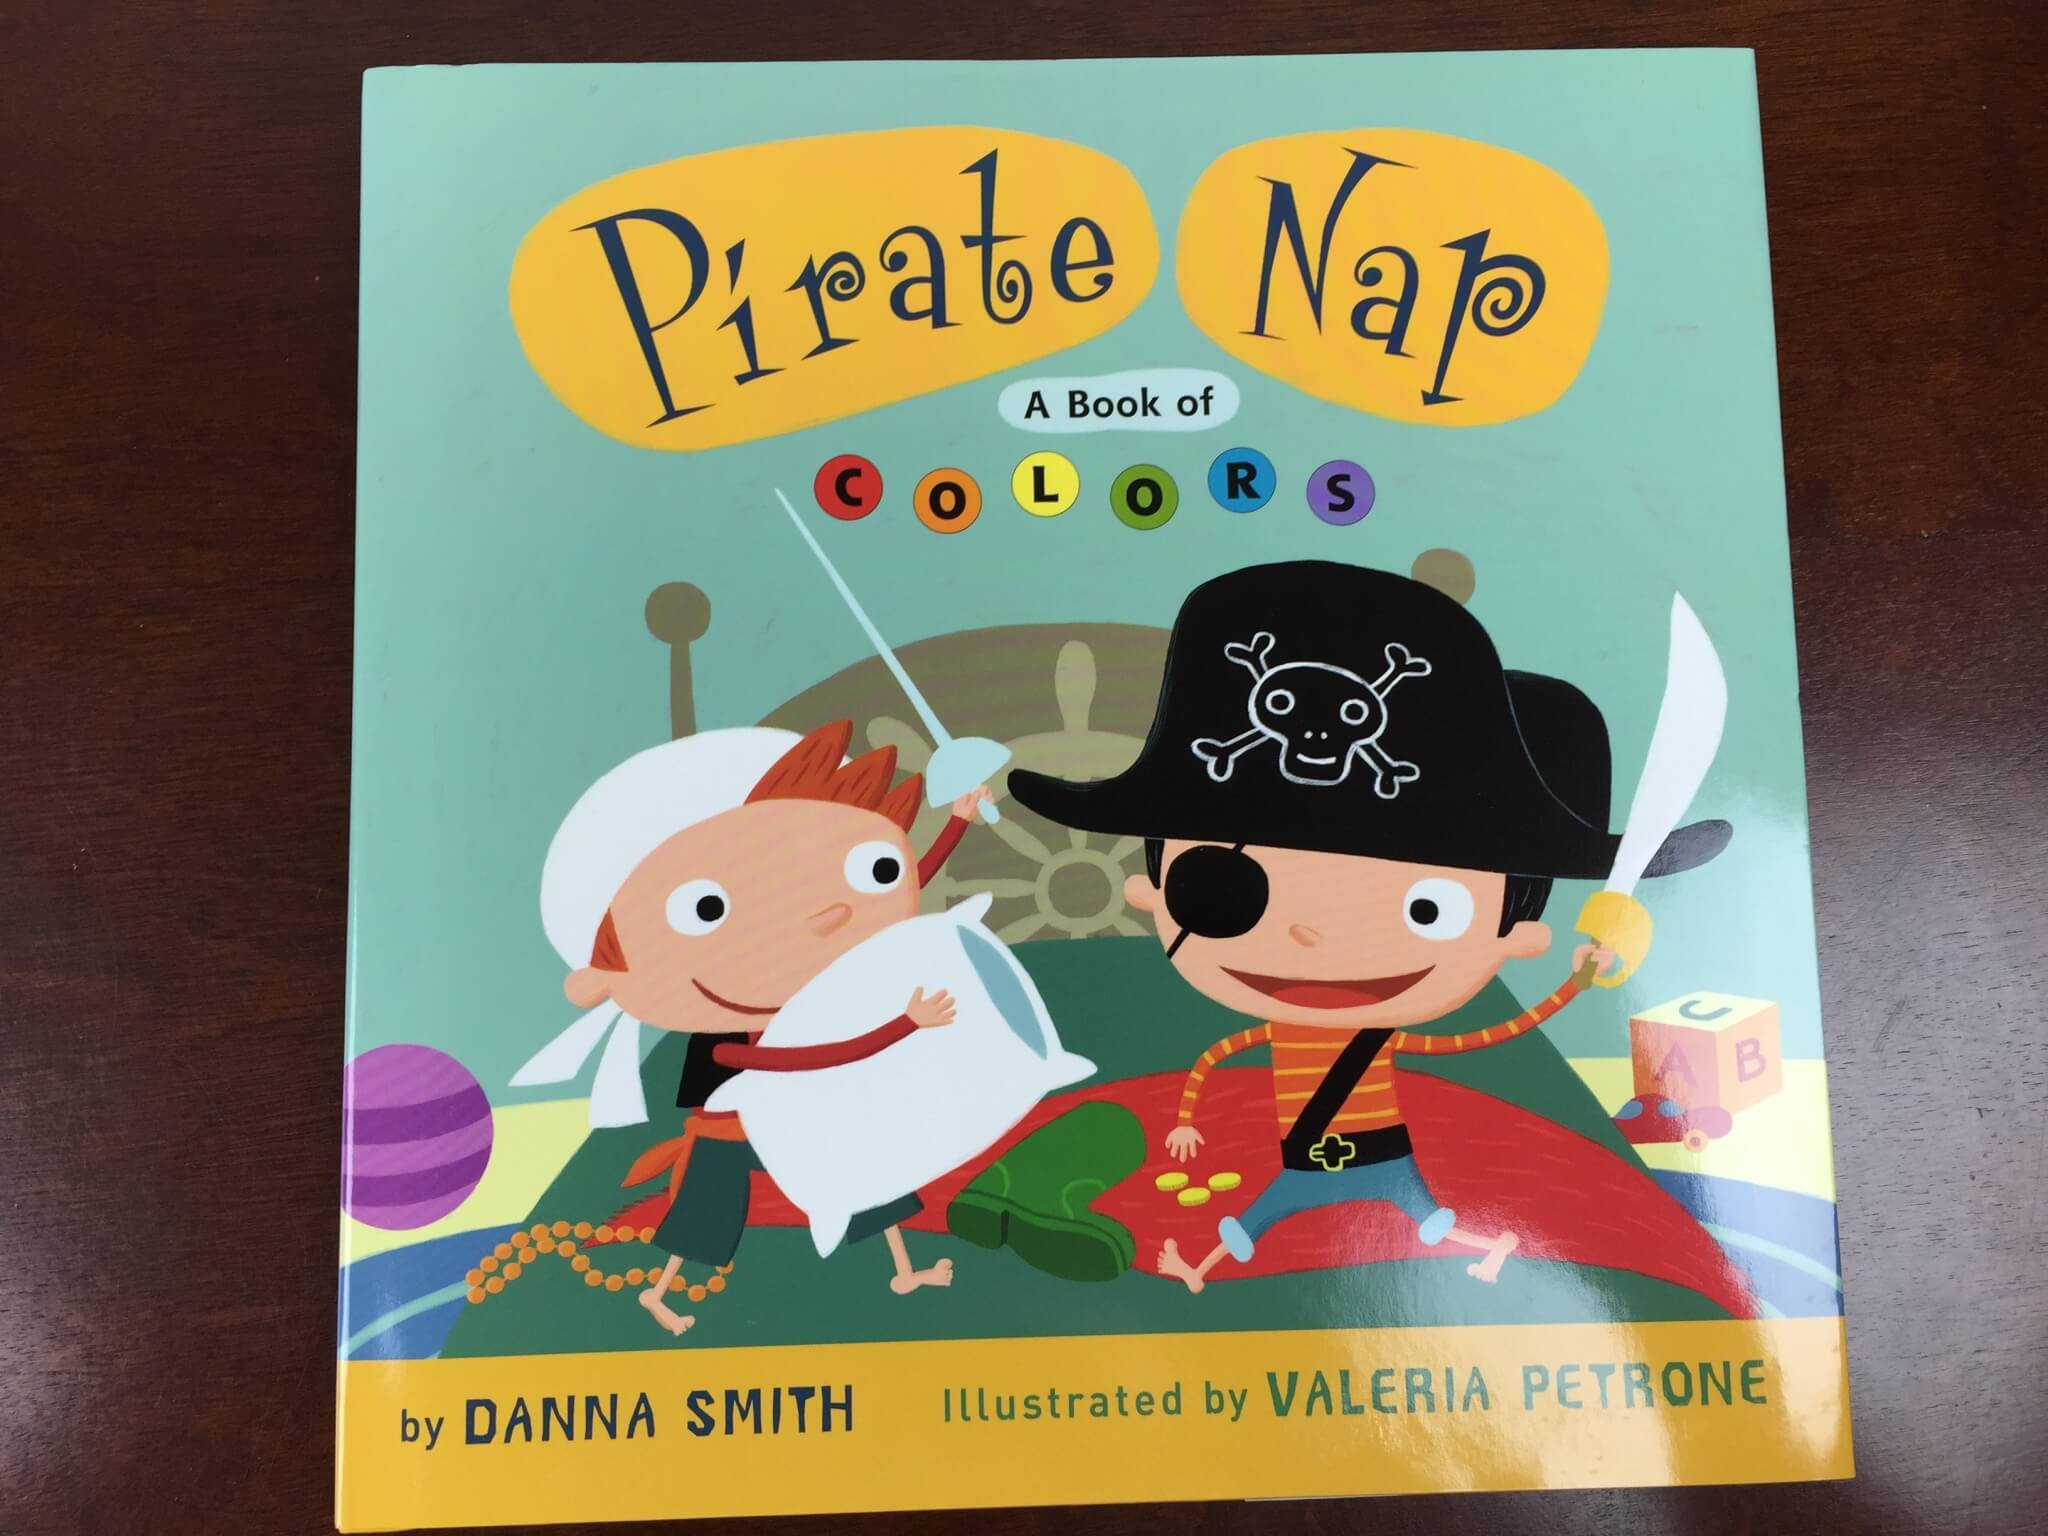 bookroo august 2015 pirate nap